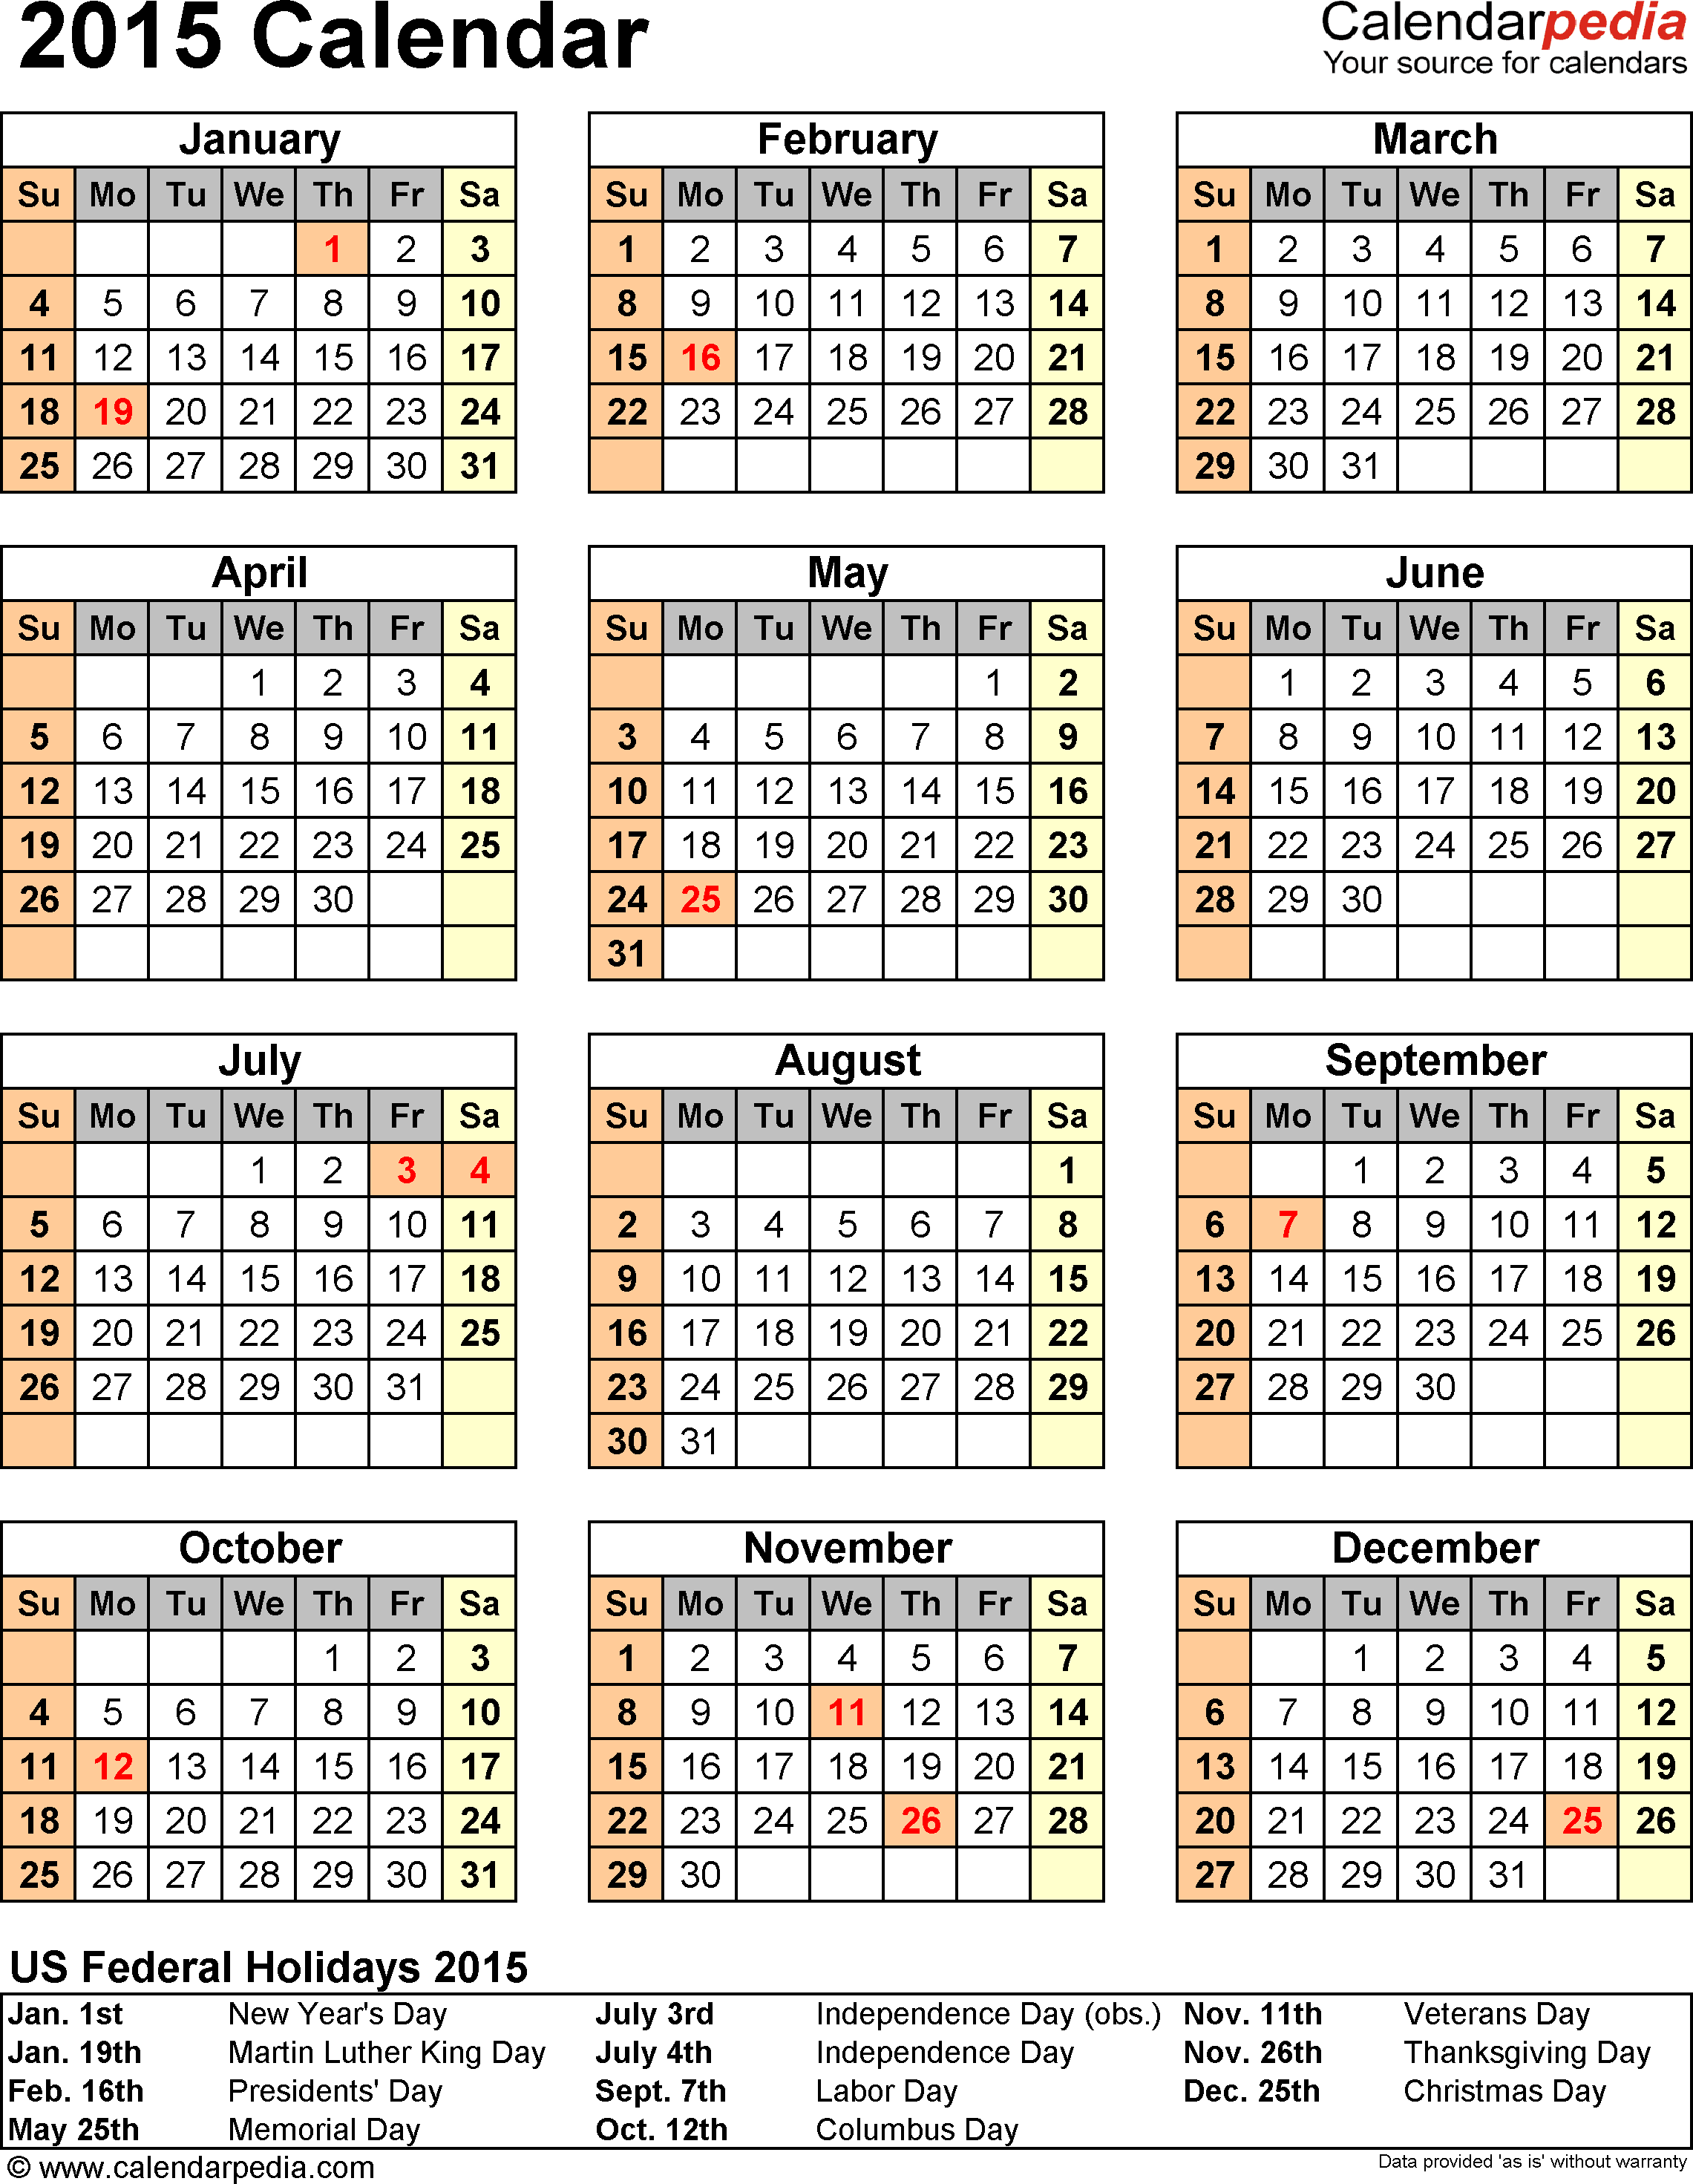 Template 15: 2015 Calendar for Word, 1 page, portrait orientation